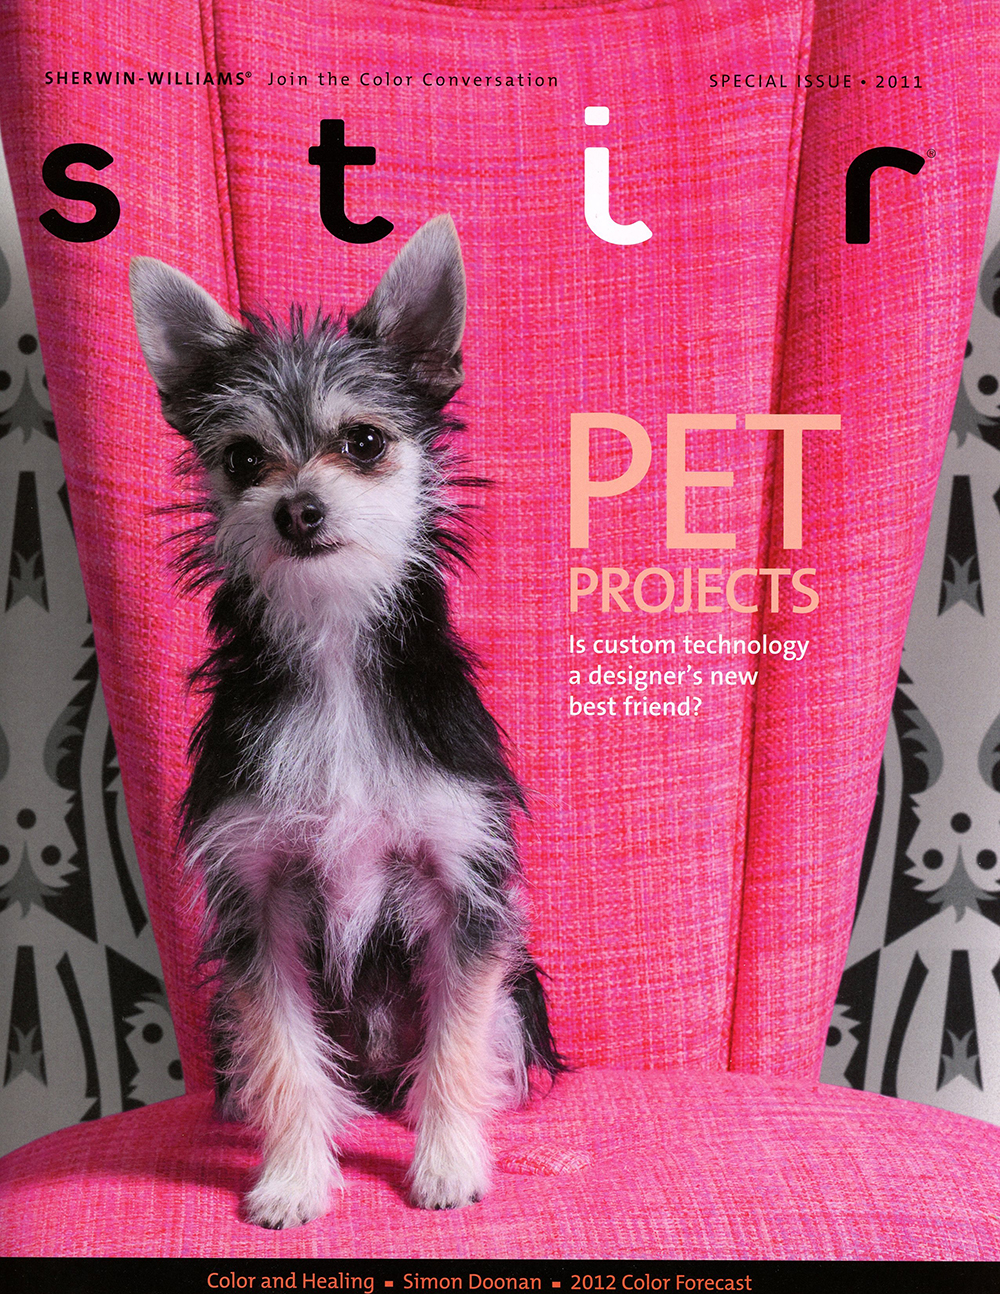 Fabrics Based on Your Pet - Stir Magazine